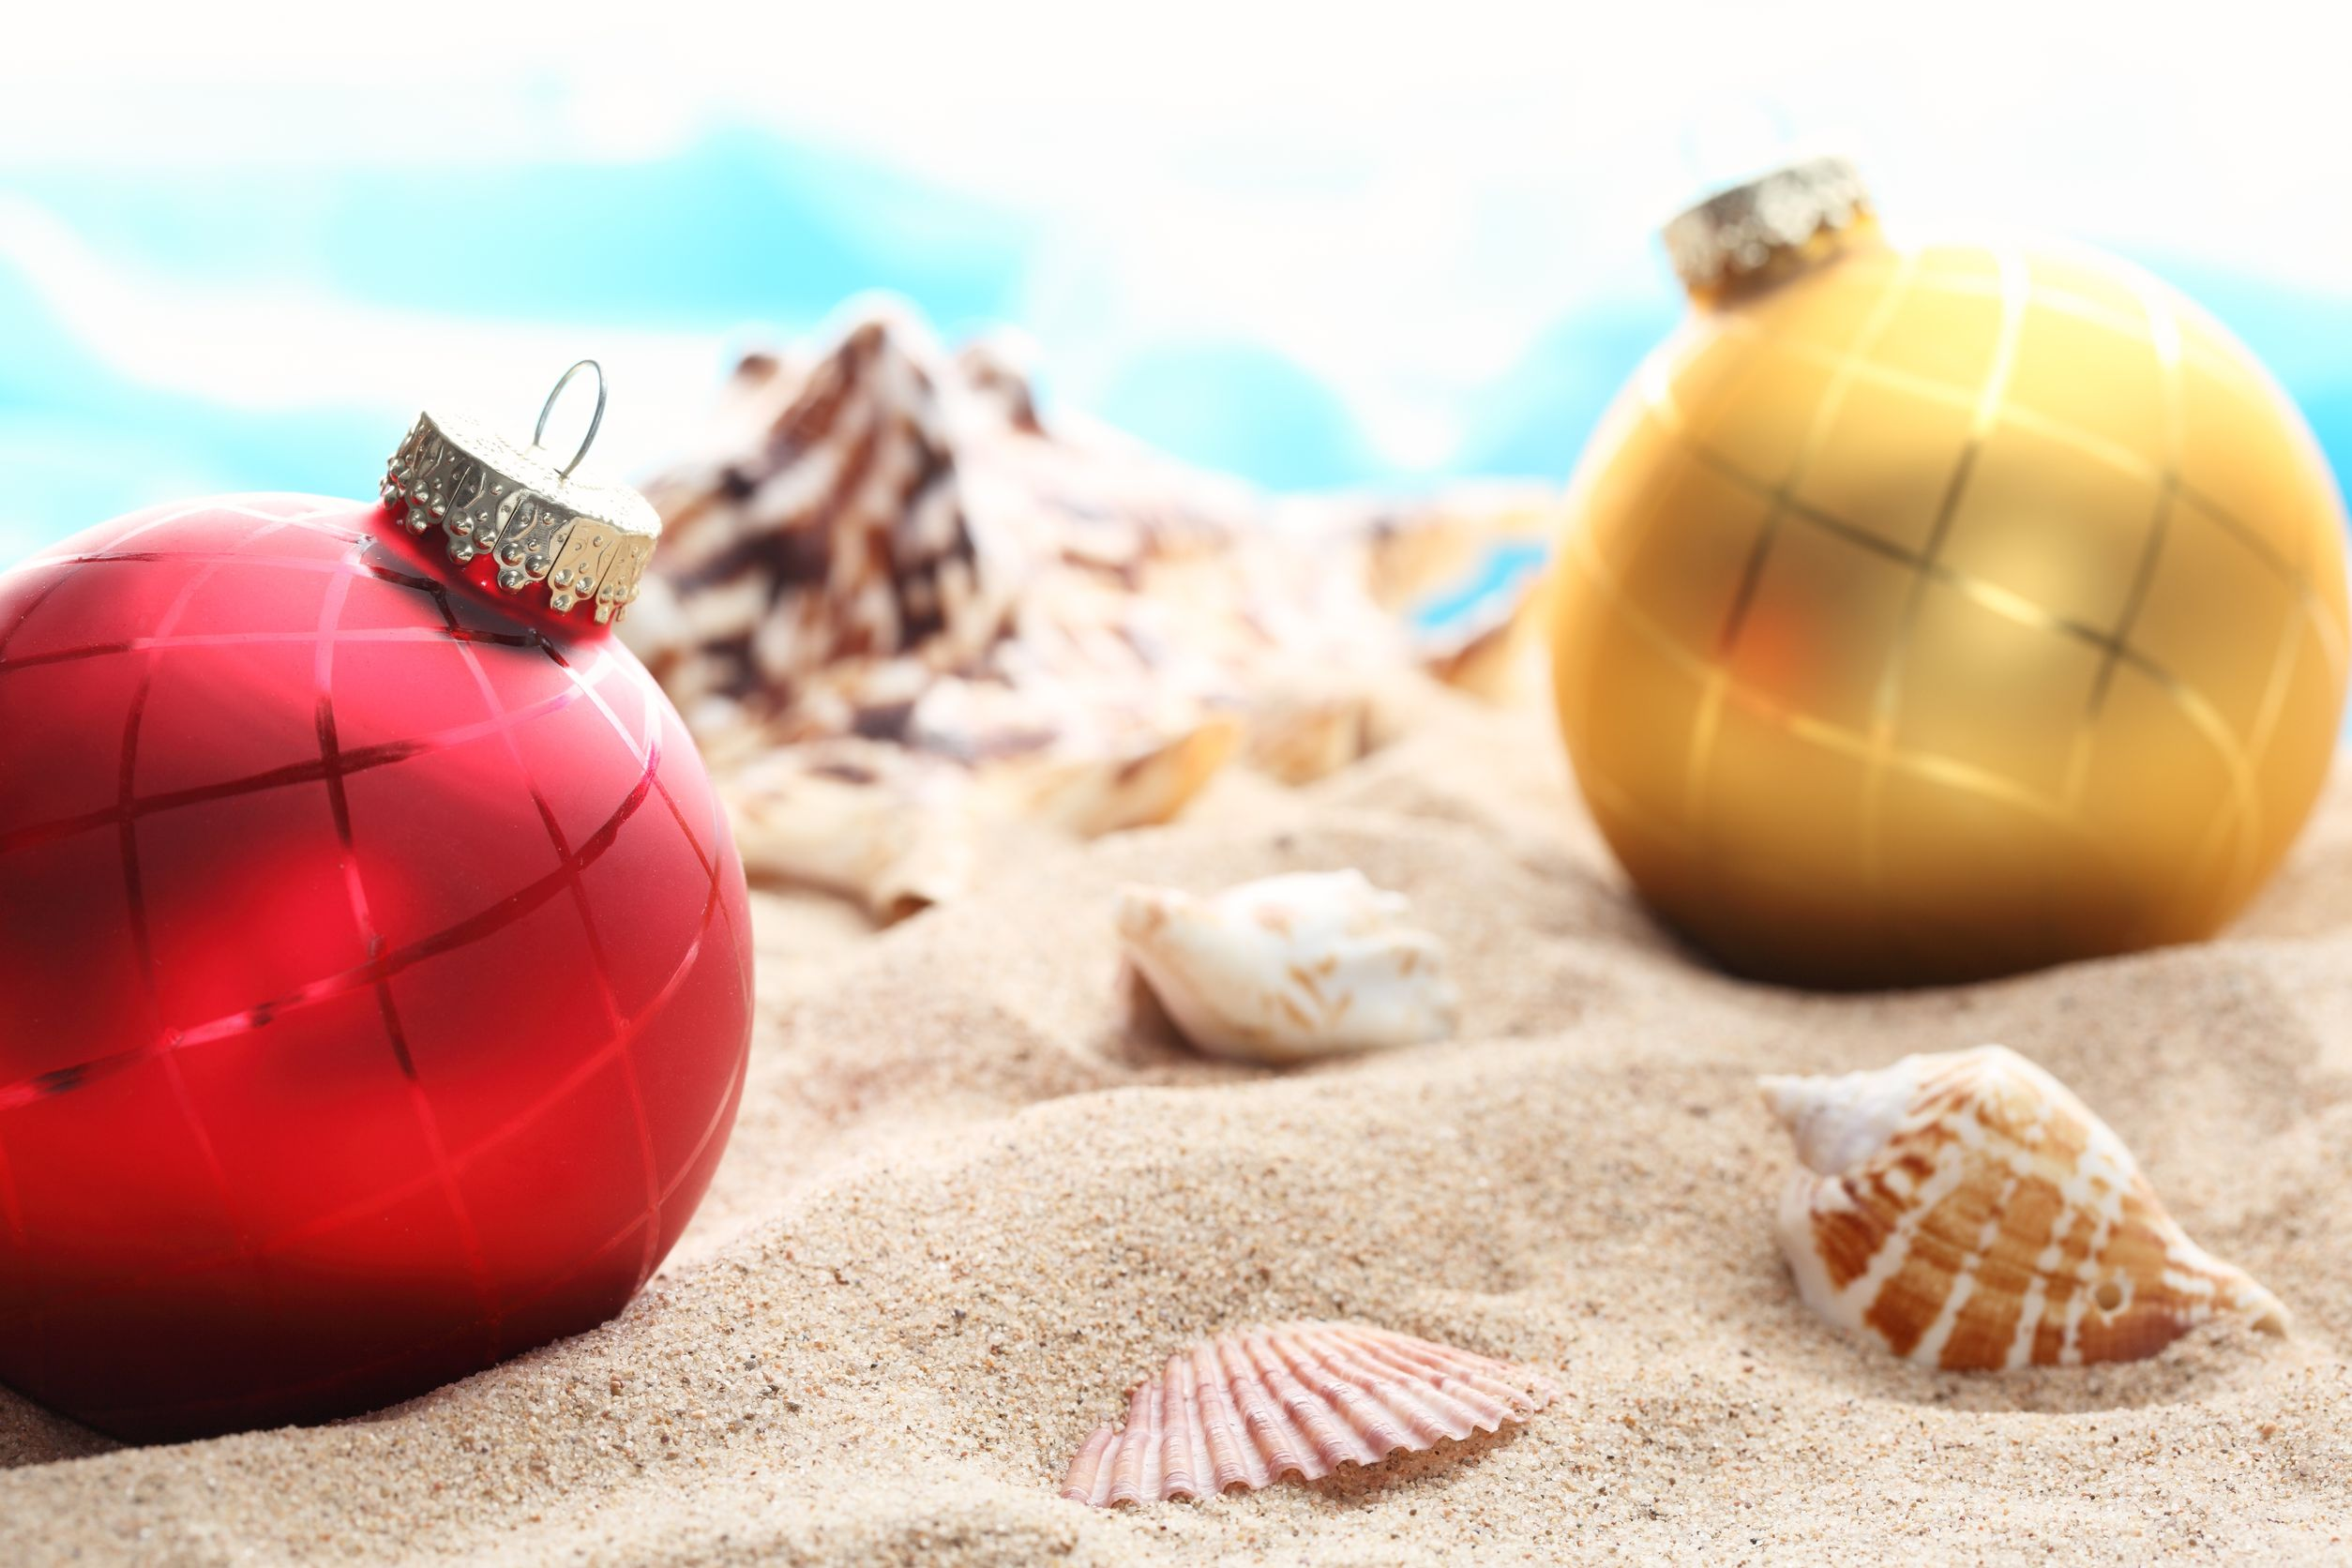 festive season Find festive season stock images in hd and millions of other royalty-free stock photos, illustrations, and vectors in the shutterstock collection thousands of new, high-quality pictures added every day.